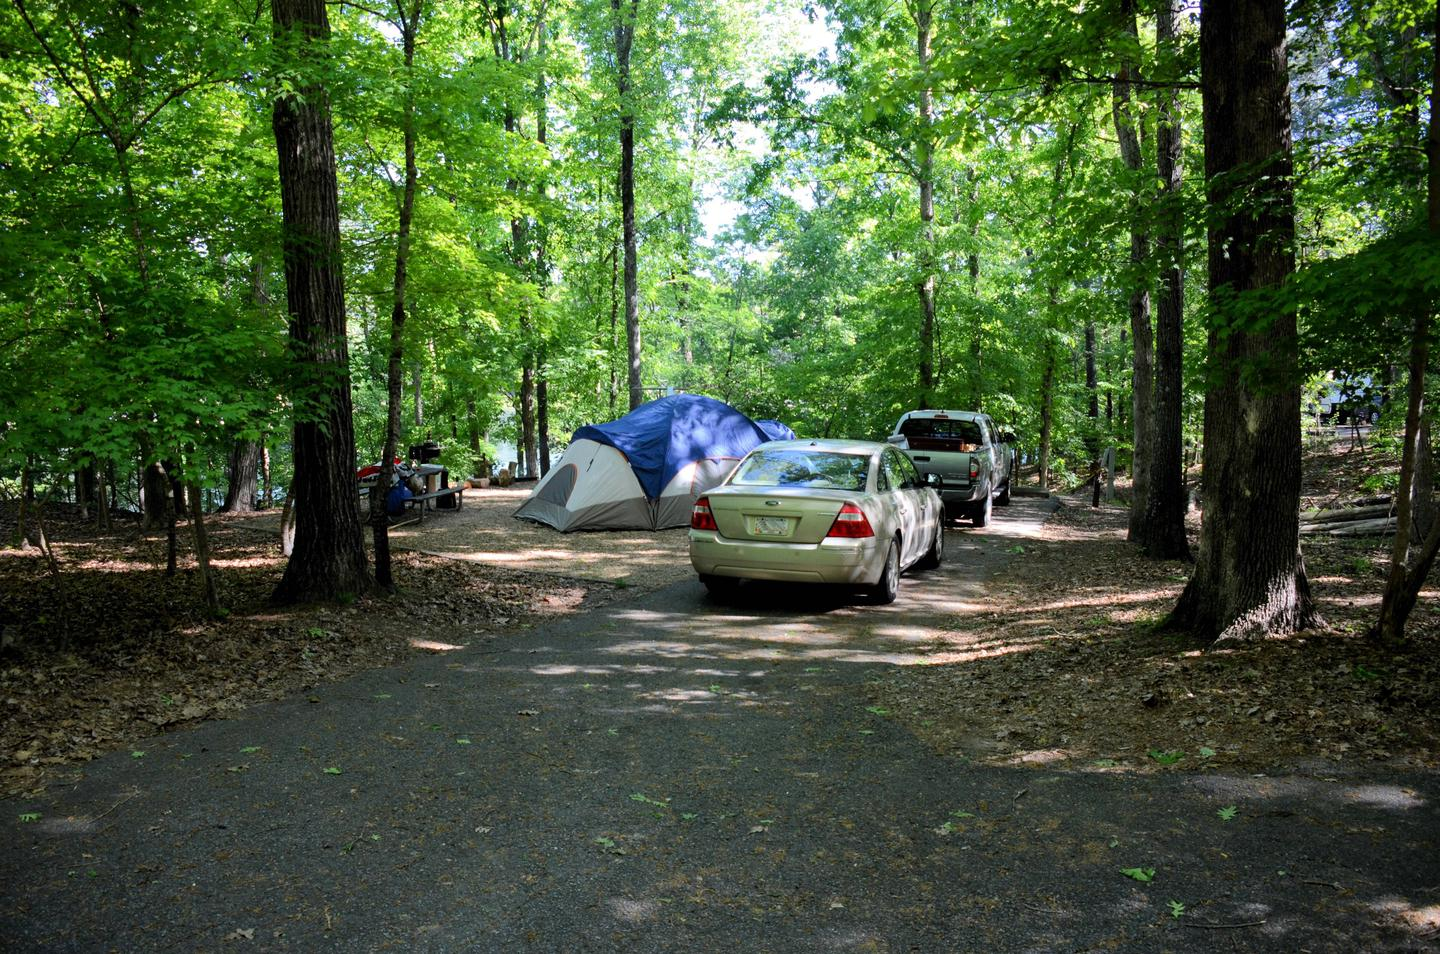 Driveway, utilities-side clearance, awning clearanceMcKinney Campground, campsite 24